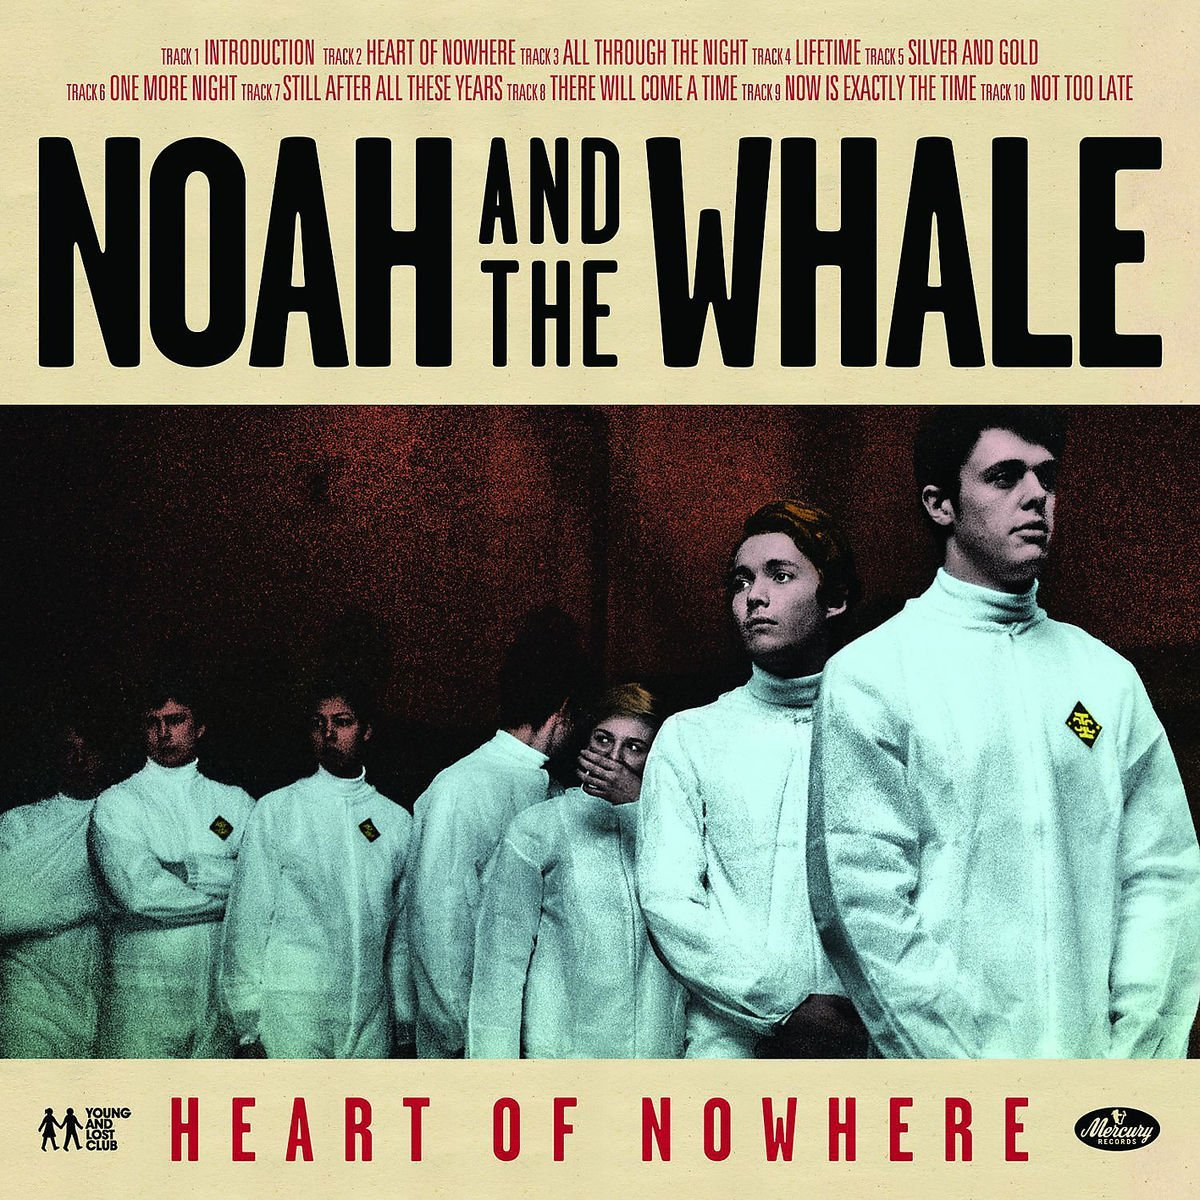 noah-whale-heart-of-nowhere-cover